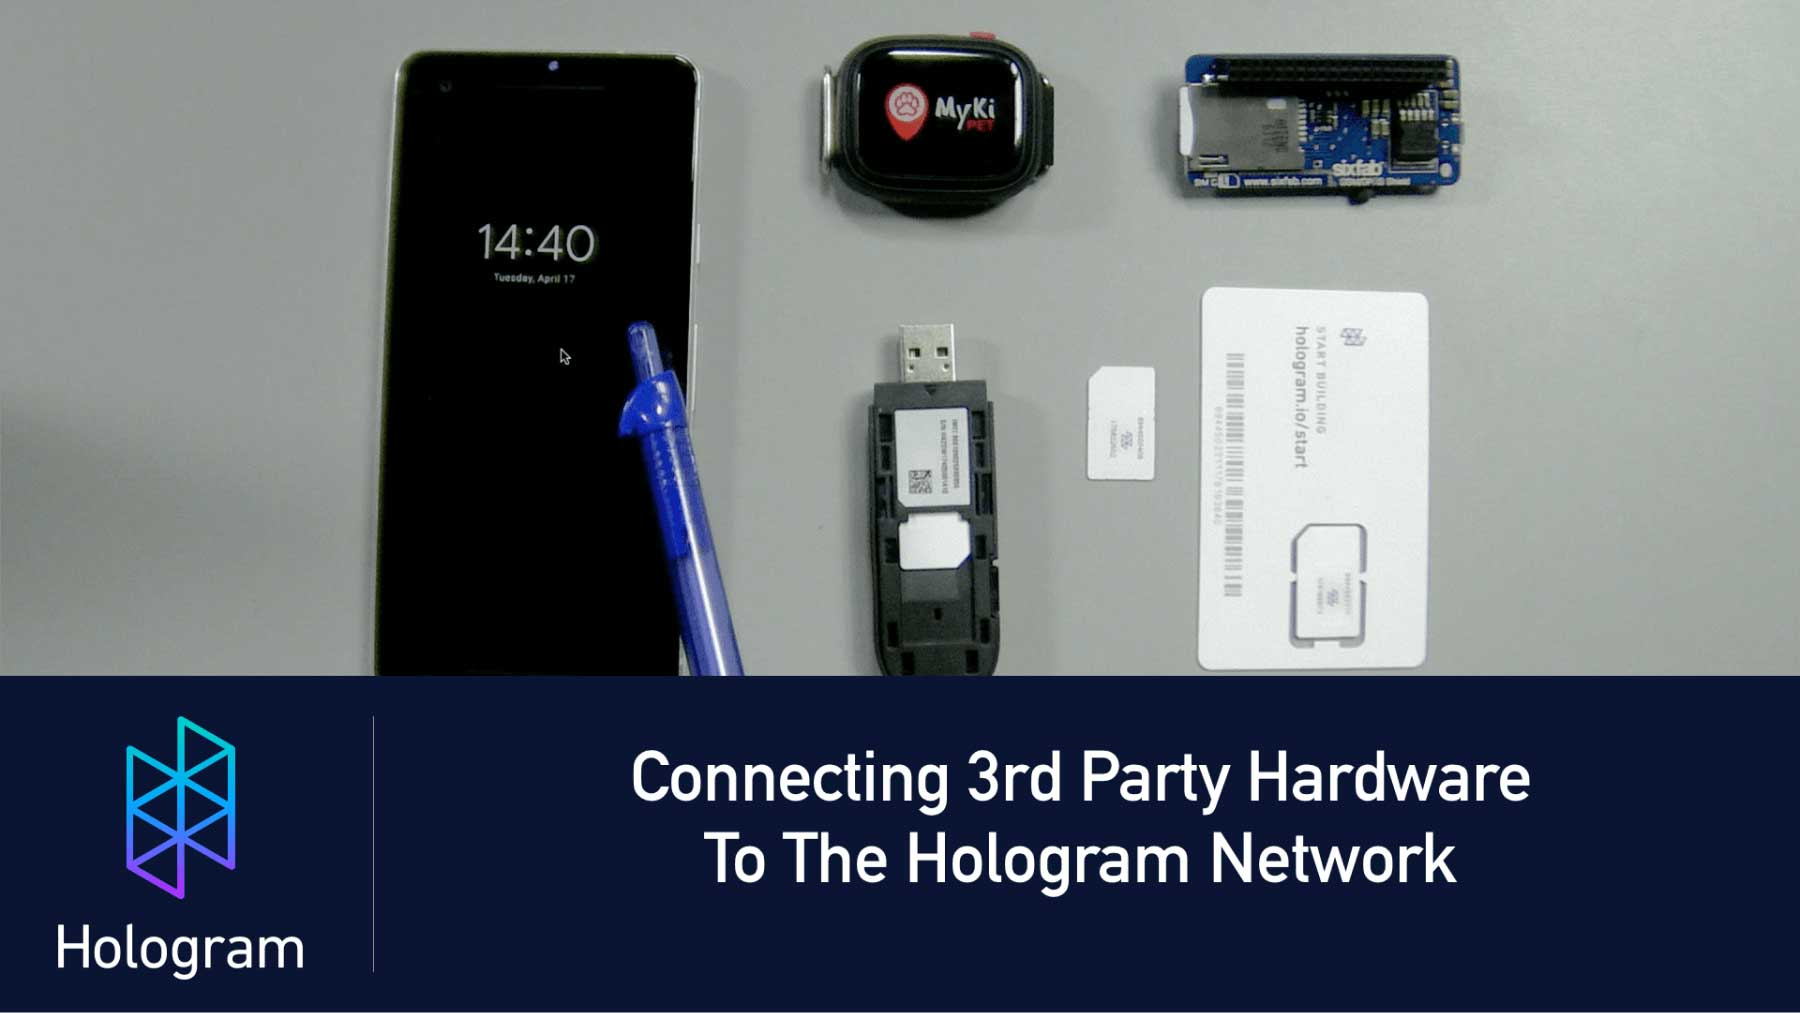 How to Connect Third Party Hardware to Hologram Network